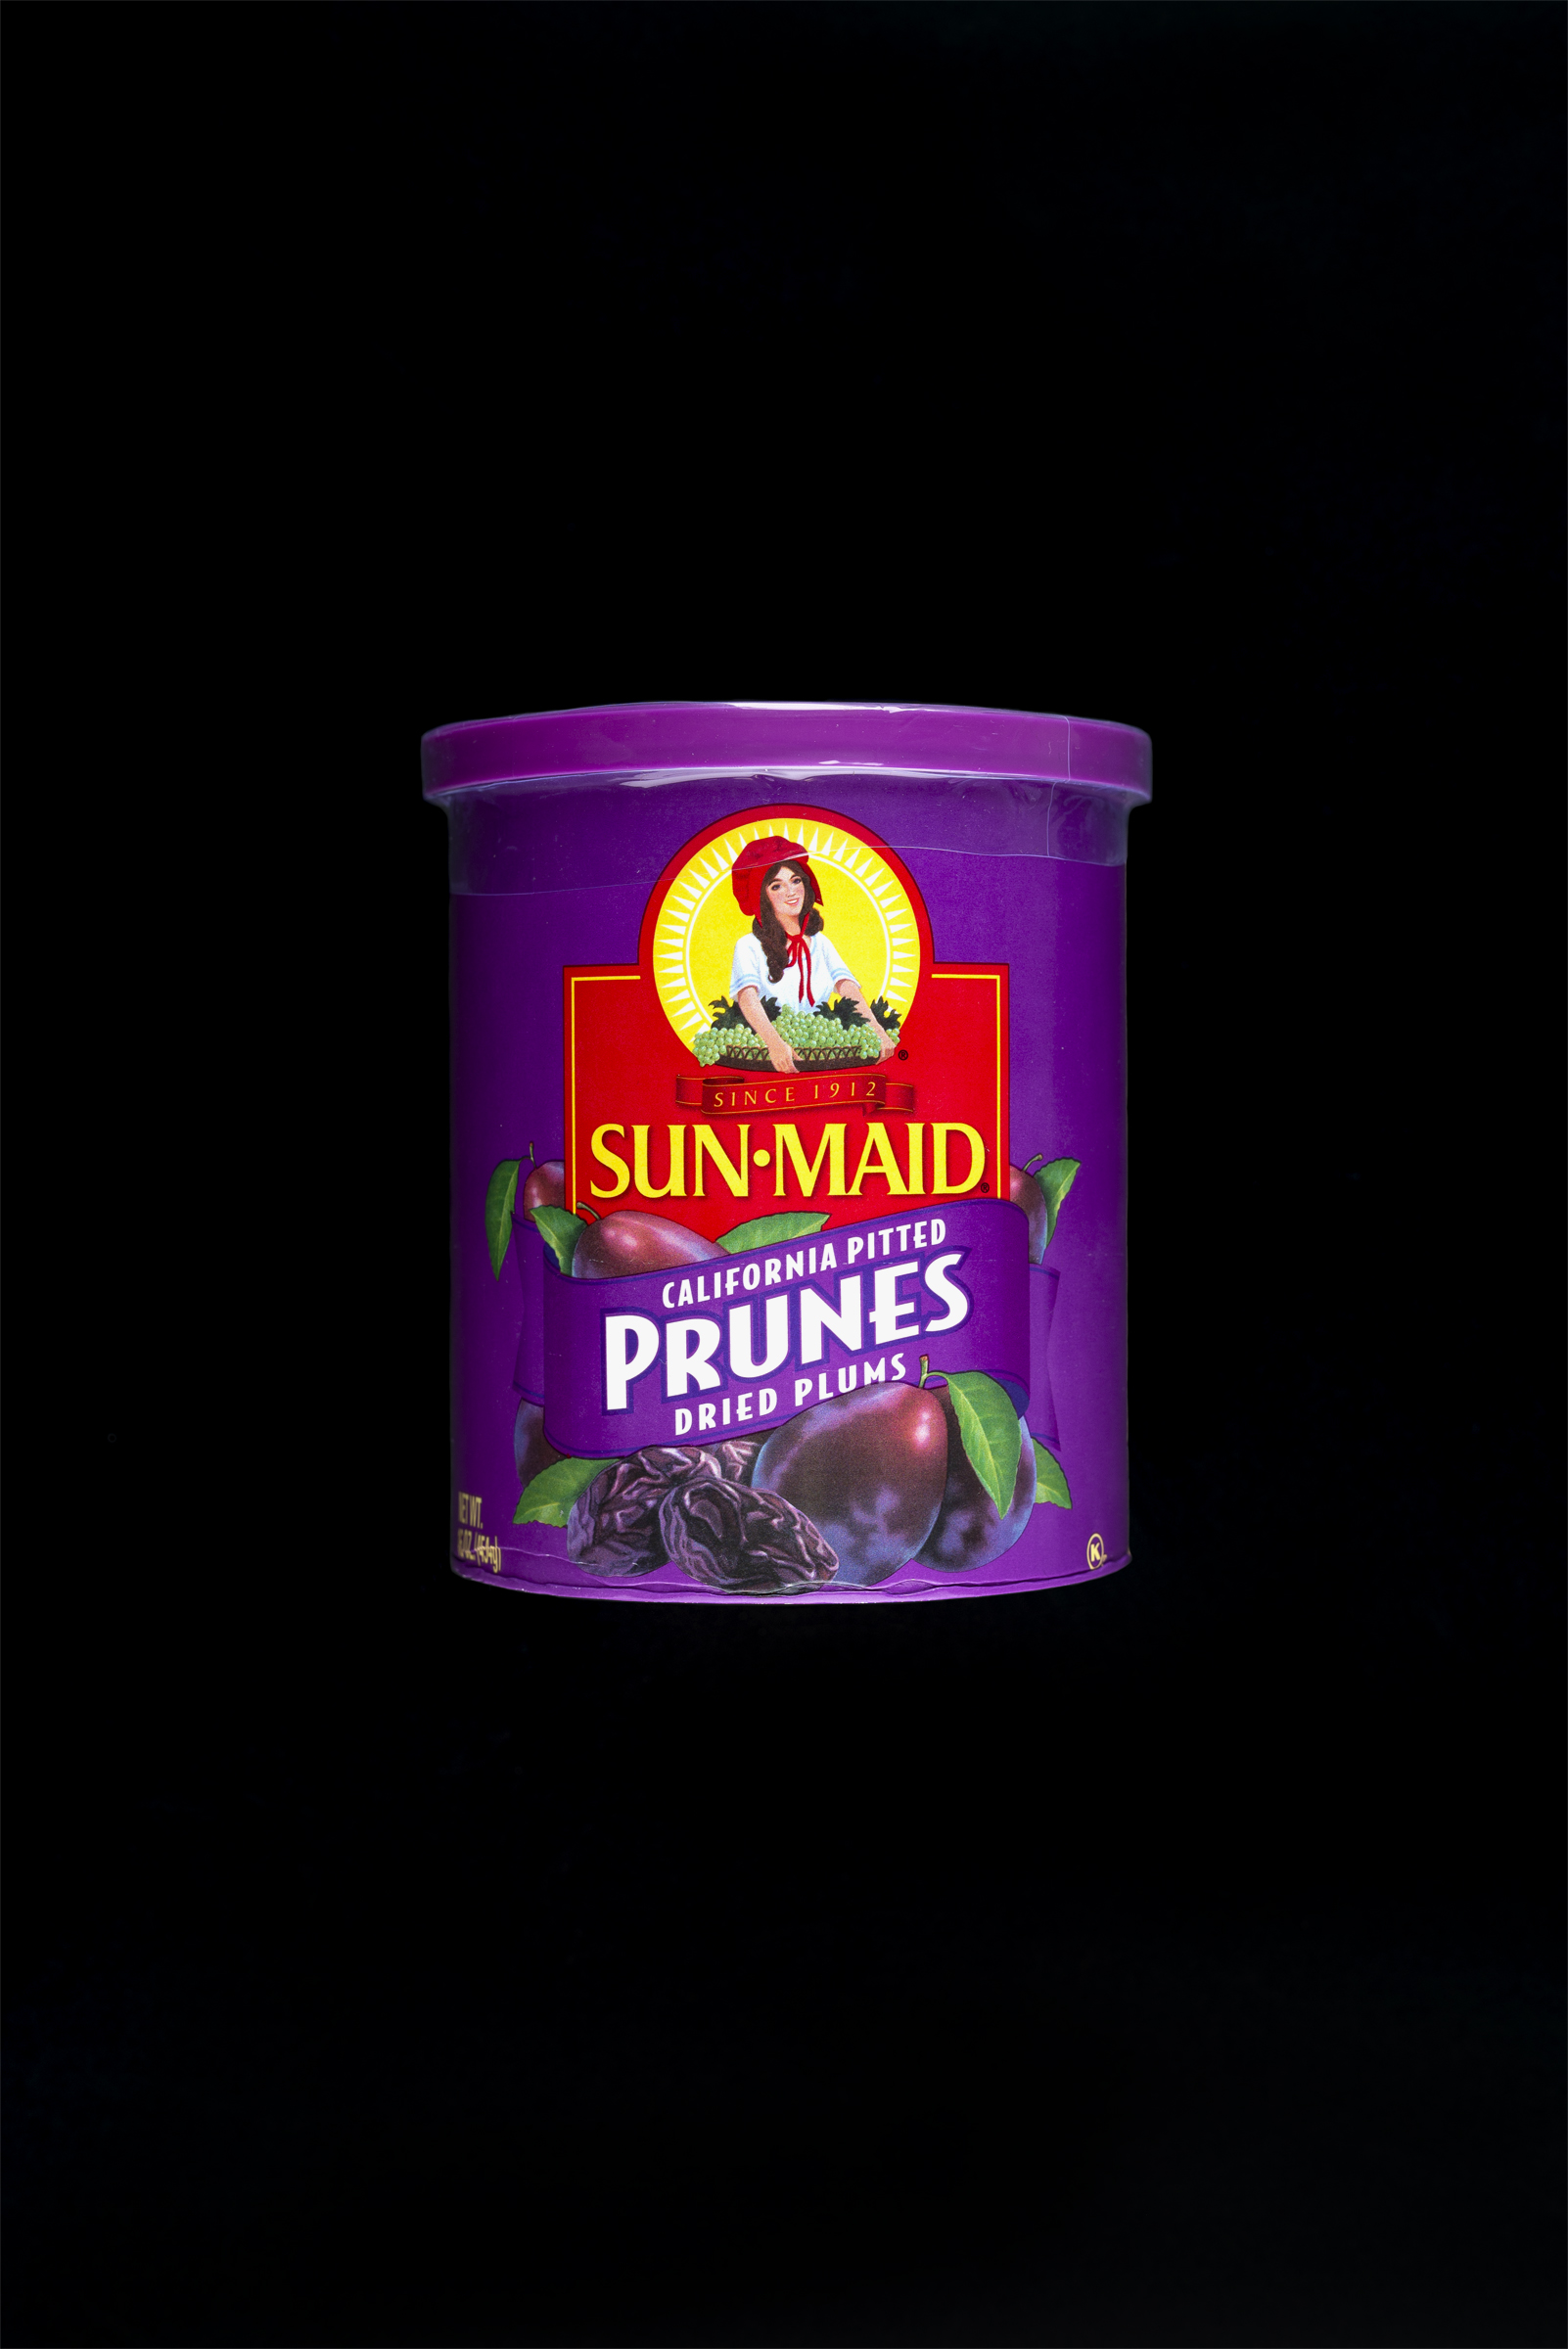 prunes(resampled)print.jpg